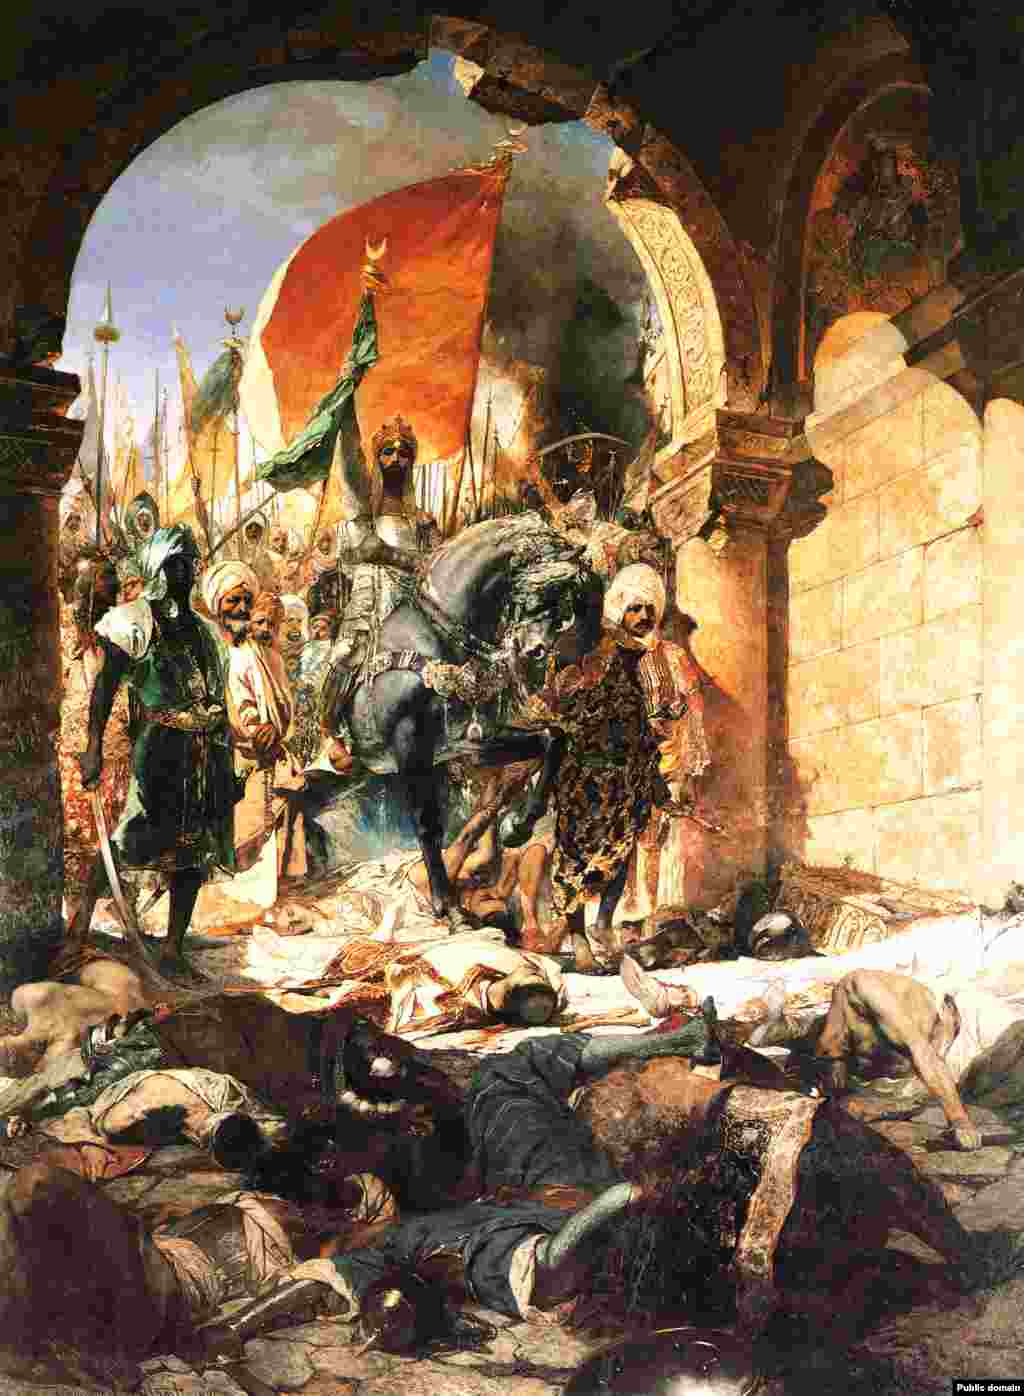 A 19th century painting by French artist Jean-Joseph Benjamin-Constant depicting Sultan Mehmet II conquering Constantinople.   After the army of 21-year-old Sultan Mehmet II conquered and sacked Constantinople in 1453, Hagia Sophia was converted into a mosque.